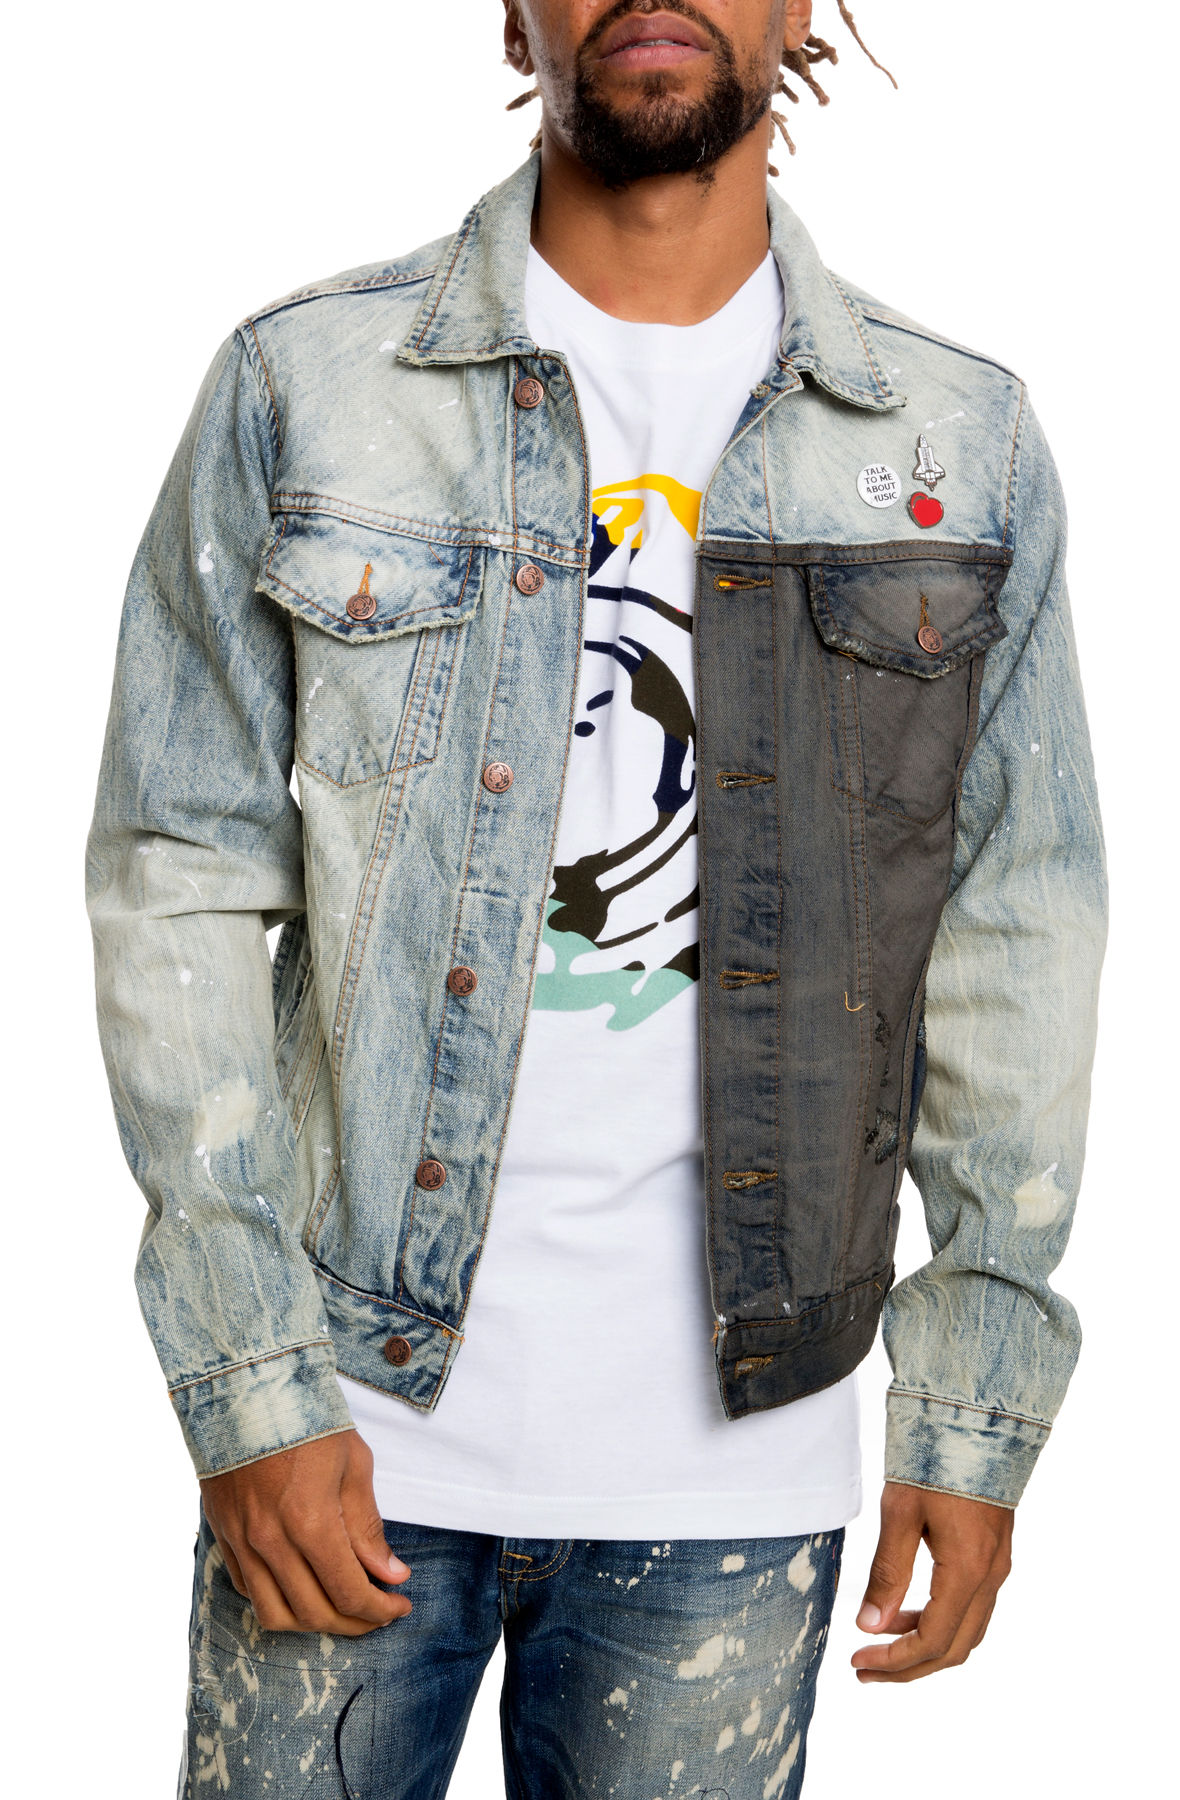 Image of The BB Clubs Jacket in Moon Wind